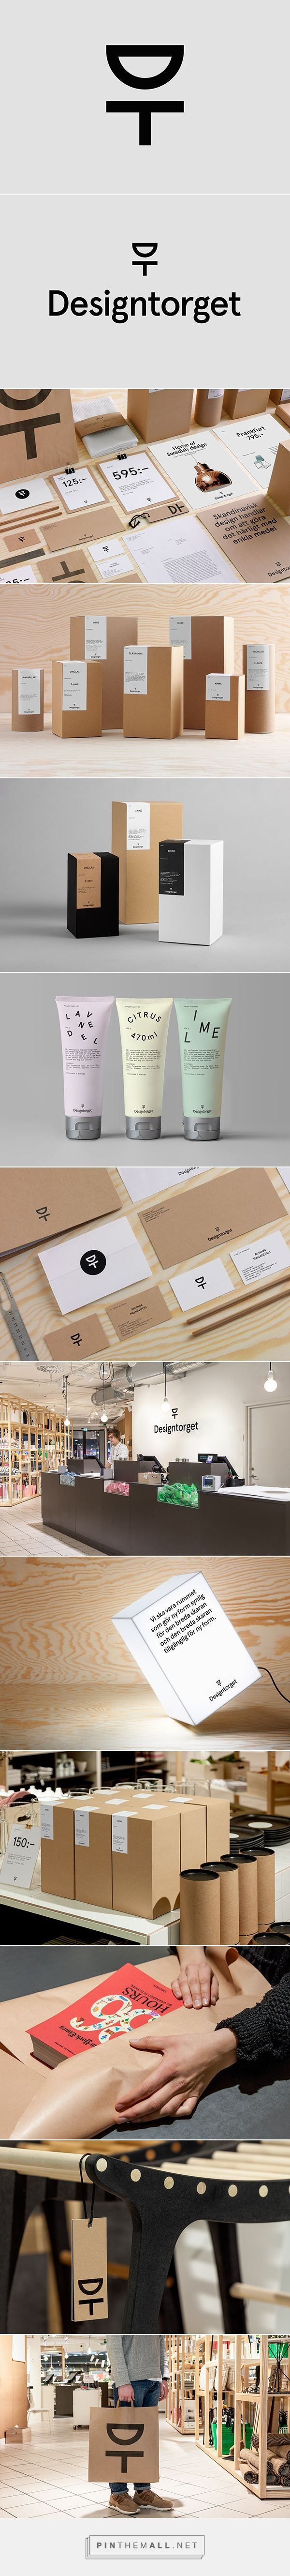 Designtorget on Behance by Kurppa Hosk, Stockholm, Sweden curated by Packaging Diva PD. Iconic Swedish packaging design. 2015 top team packaging pin.